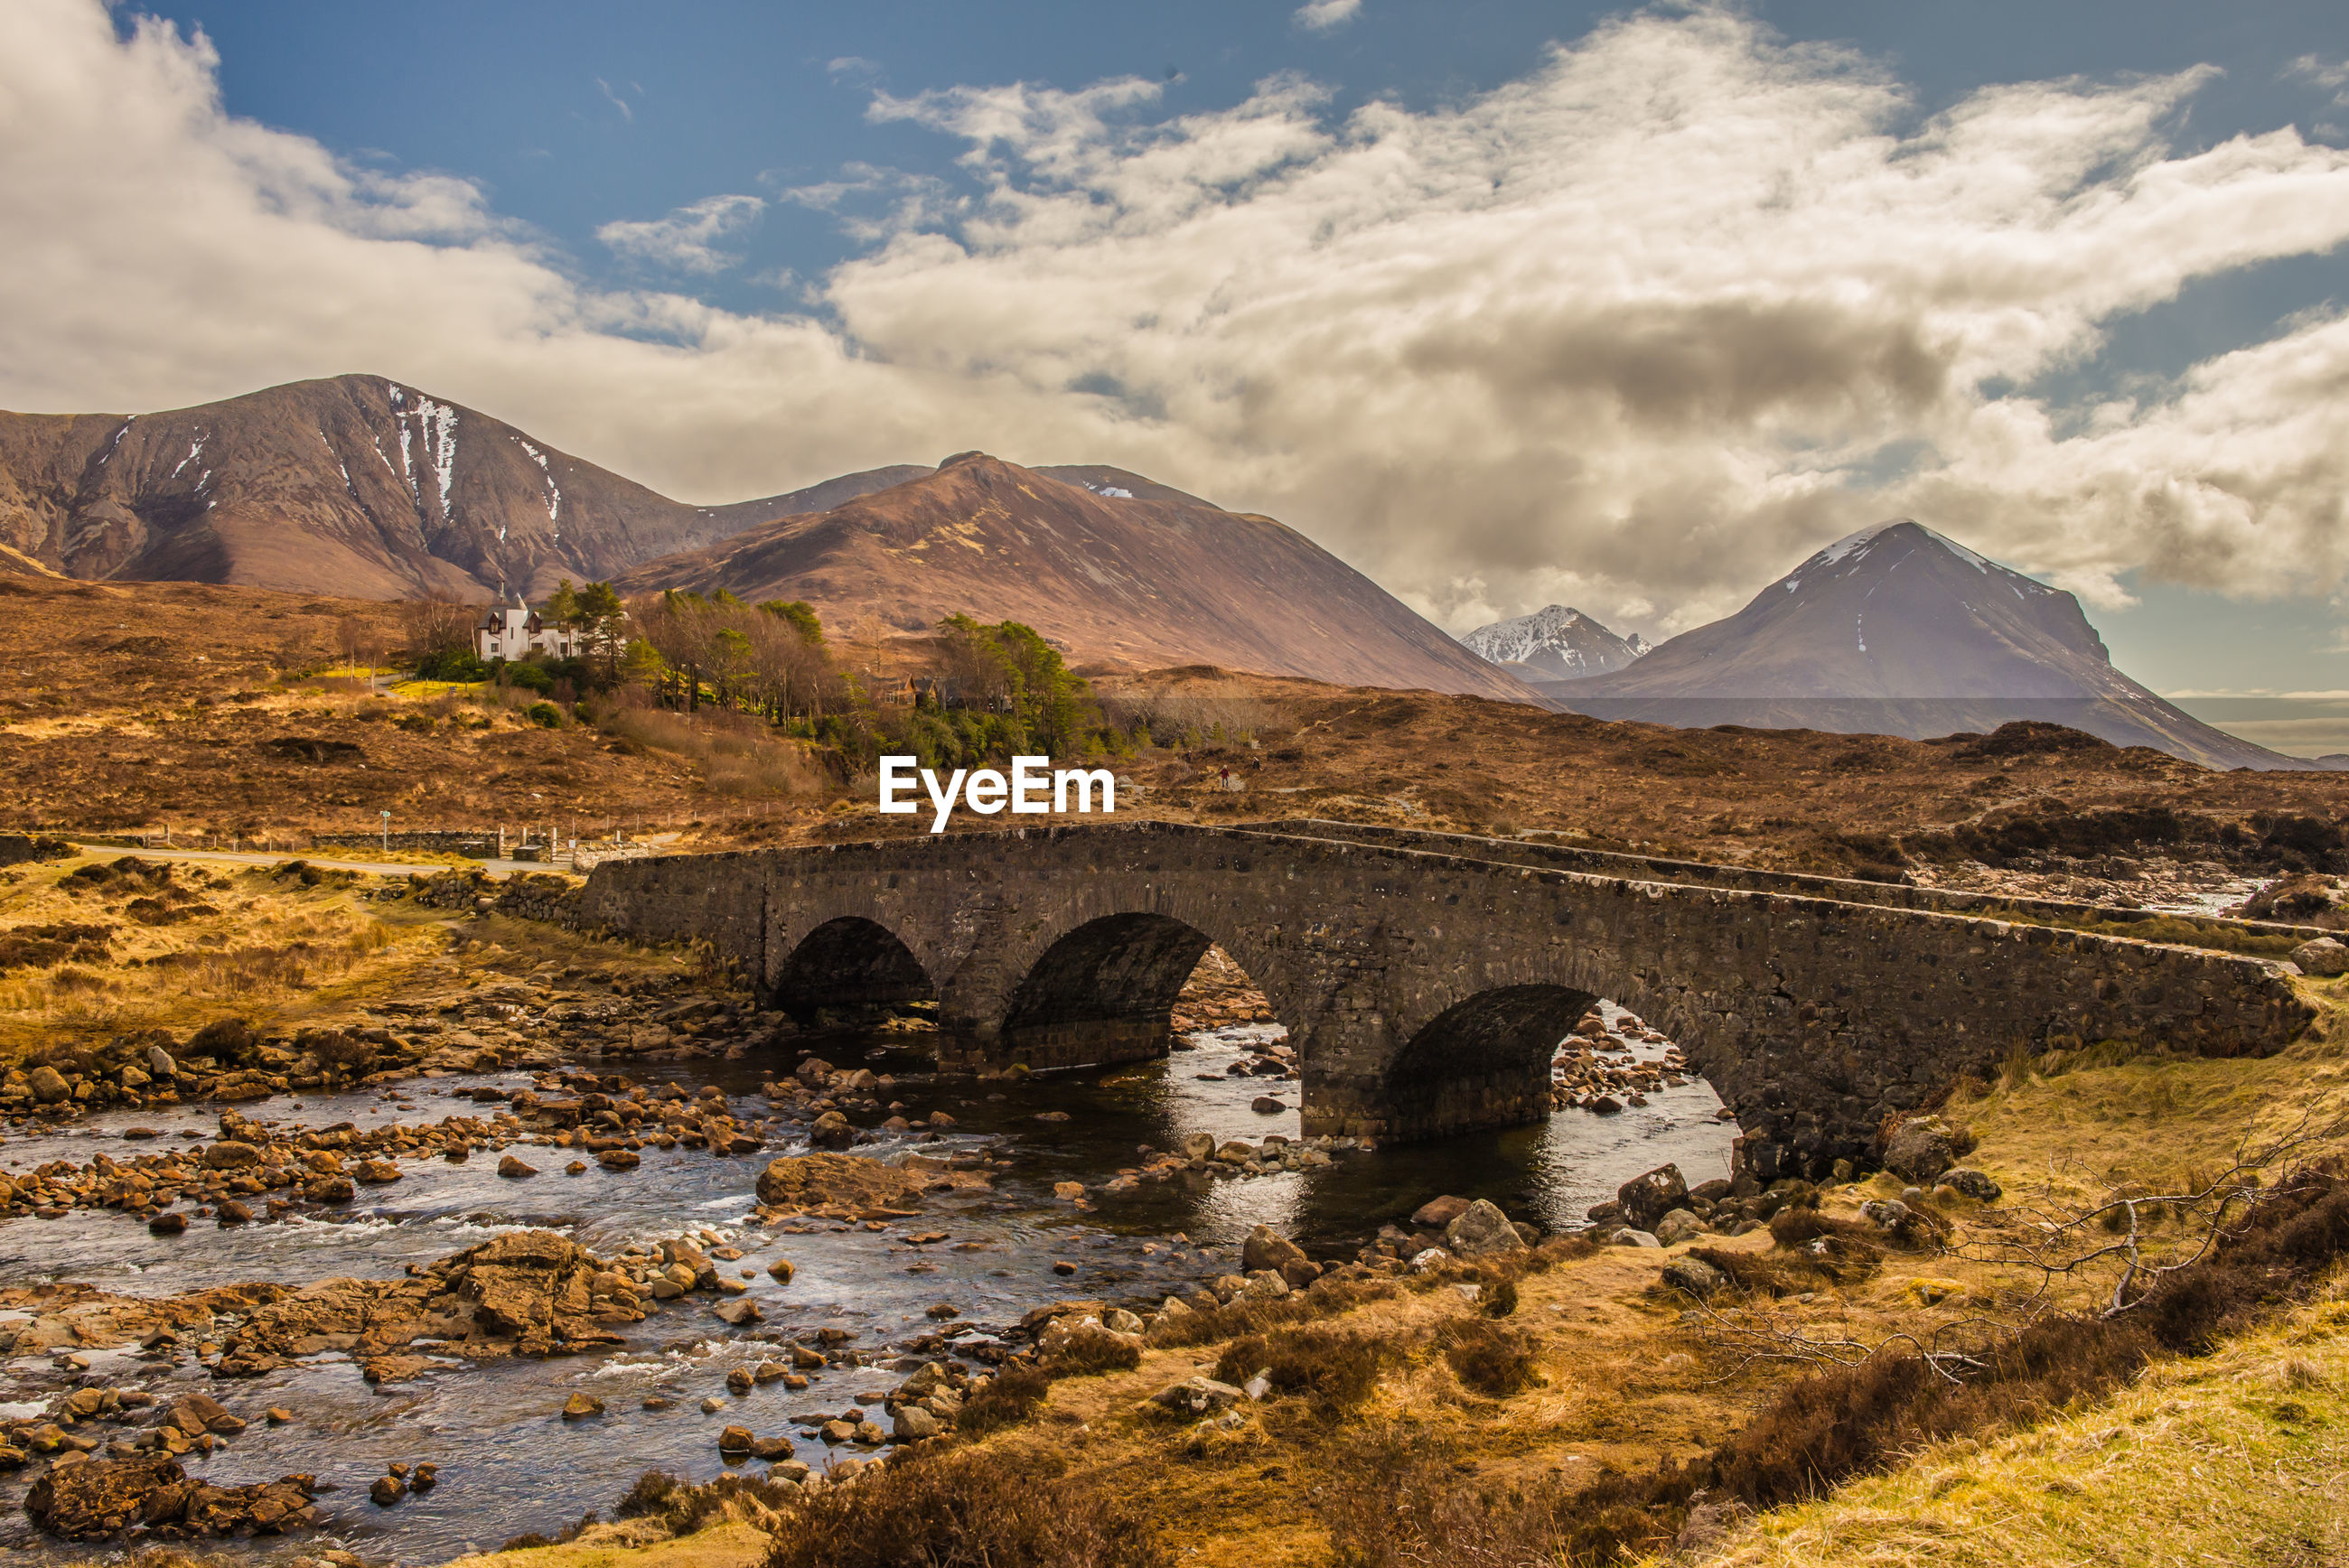 Arch bridge over river by mountains against sky